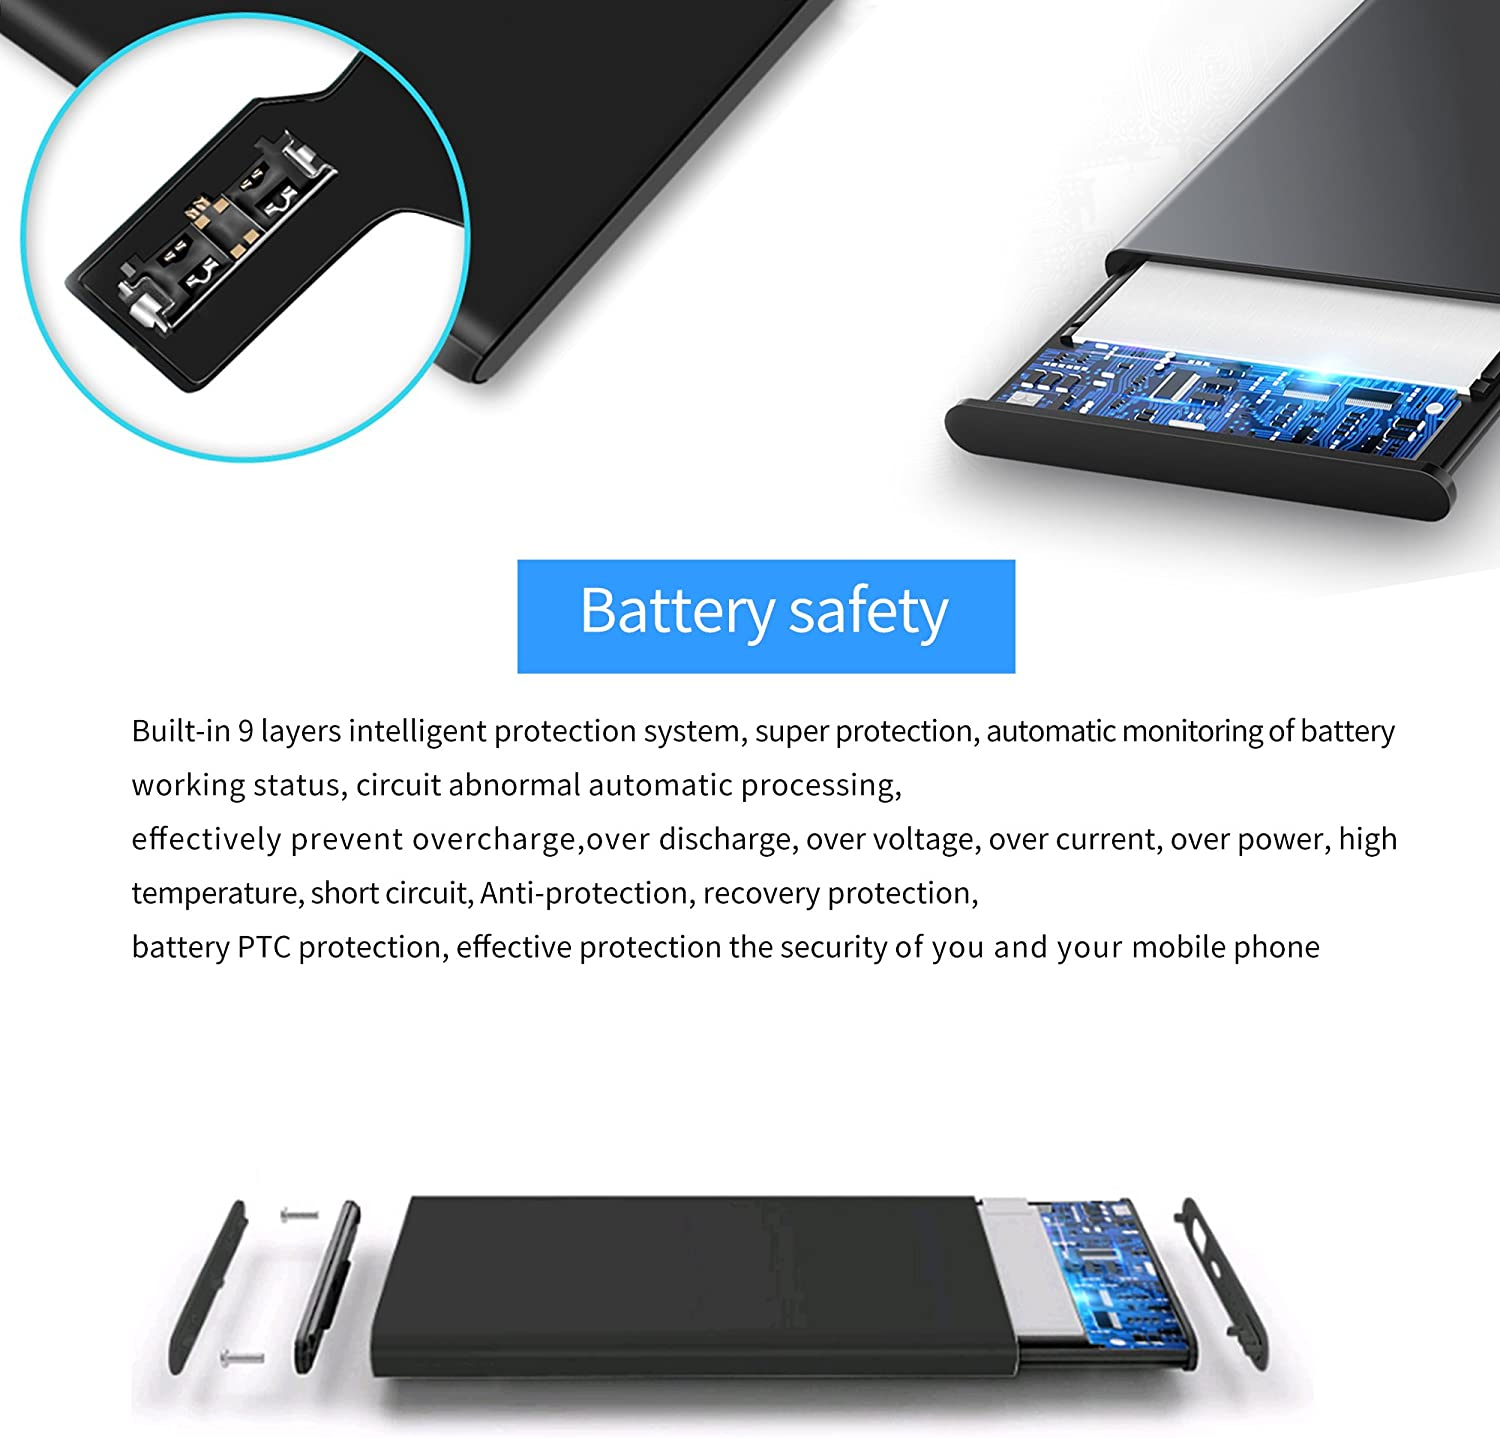 Phone Replacement Battery 2100mAh 6S High Capacity Rechargeable Replacement Battery with Repair Tools Kits Replace Battery with 24 Months Quality Assurance